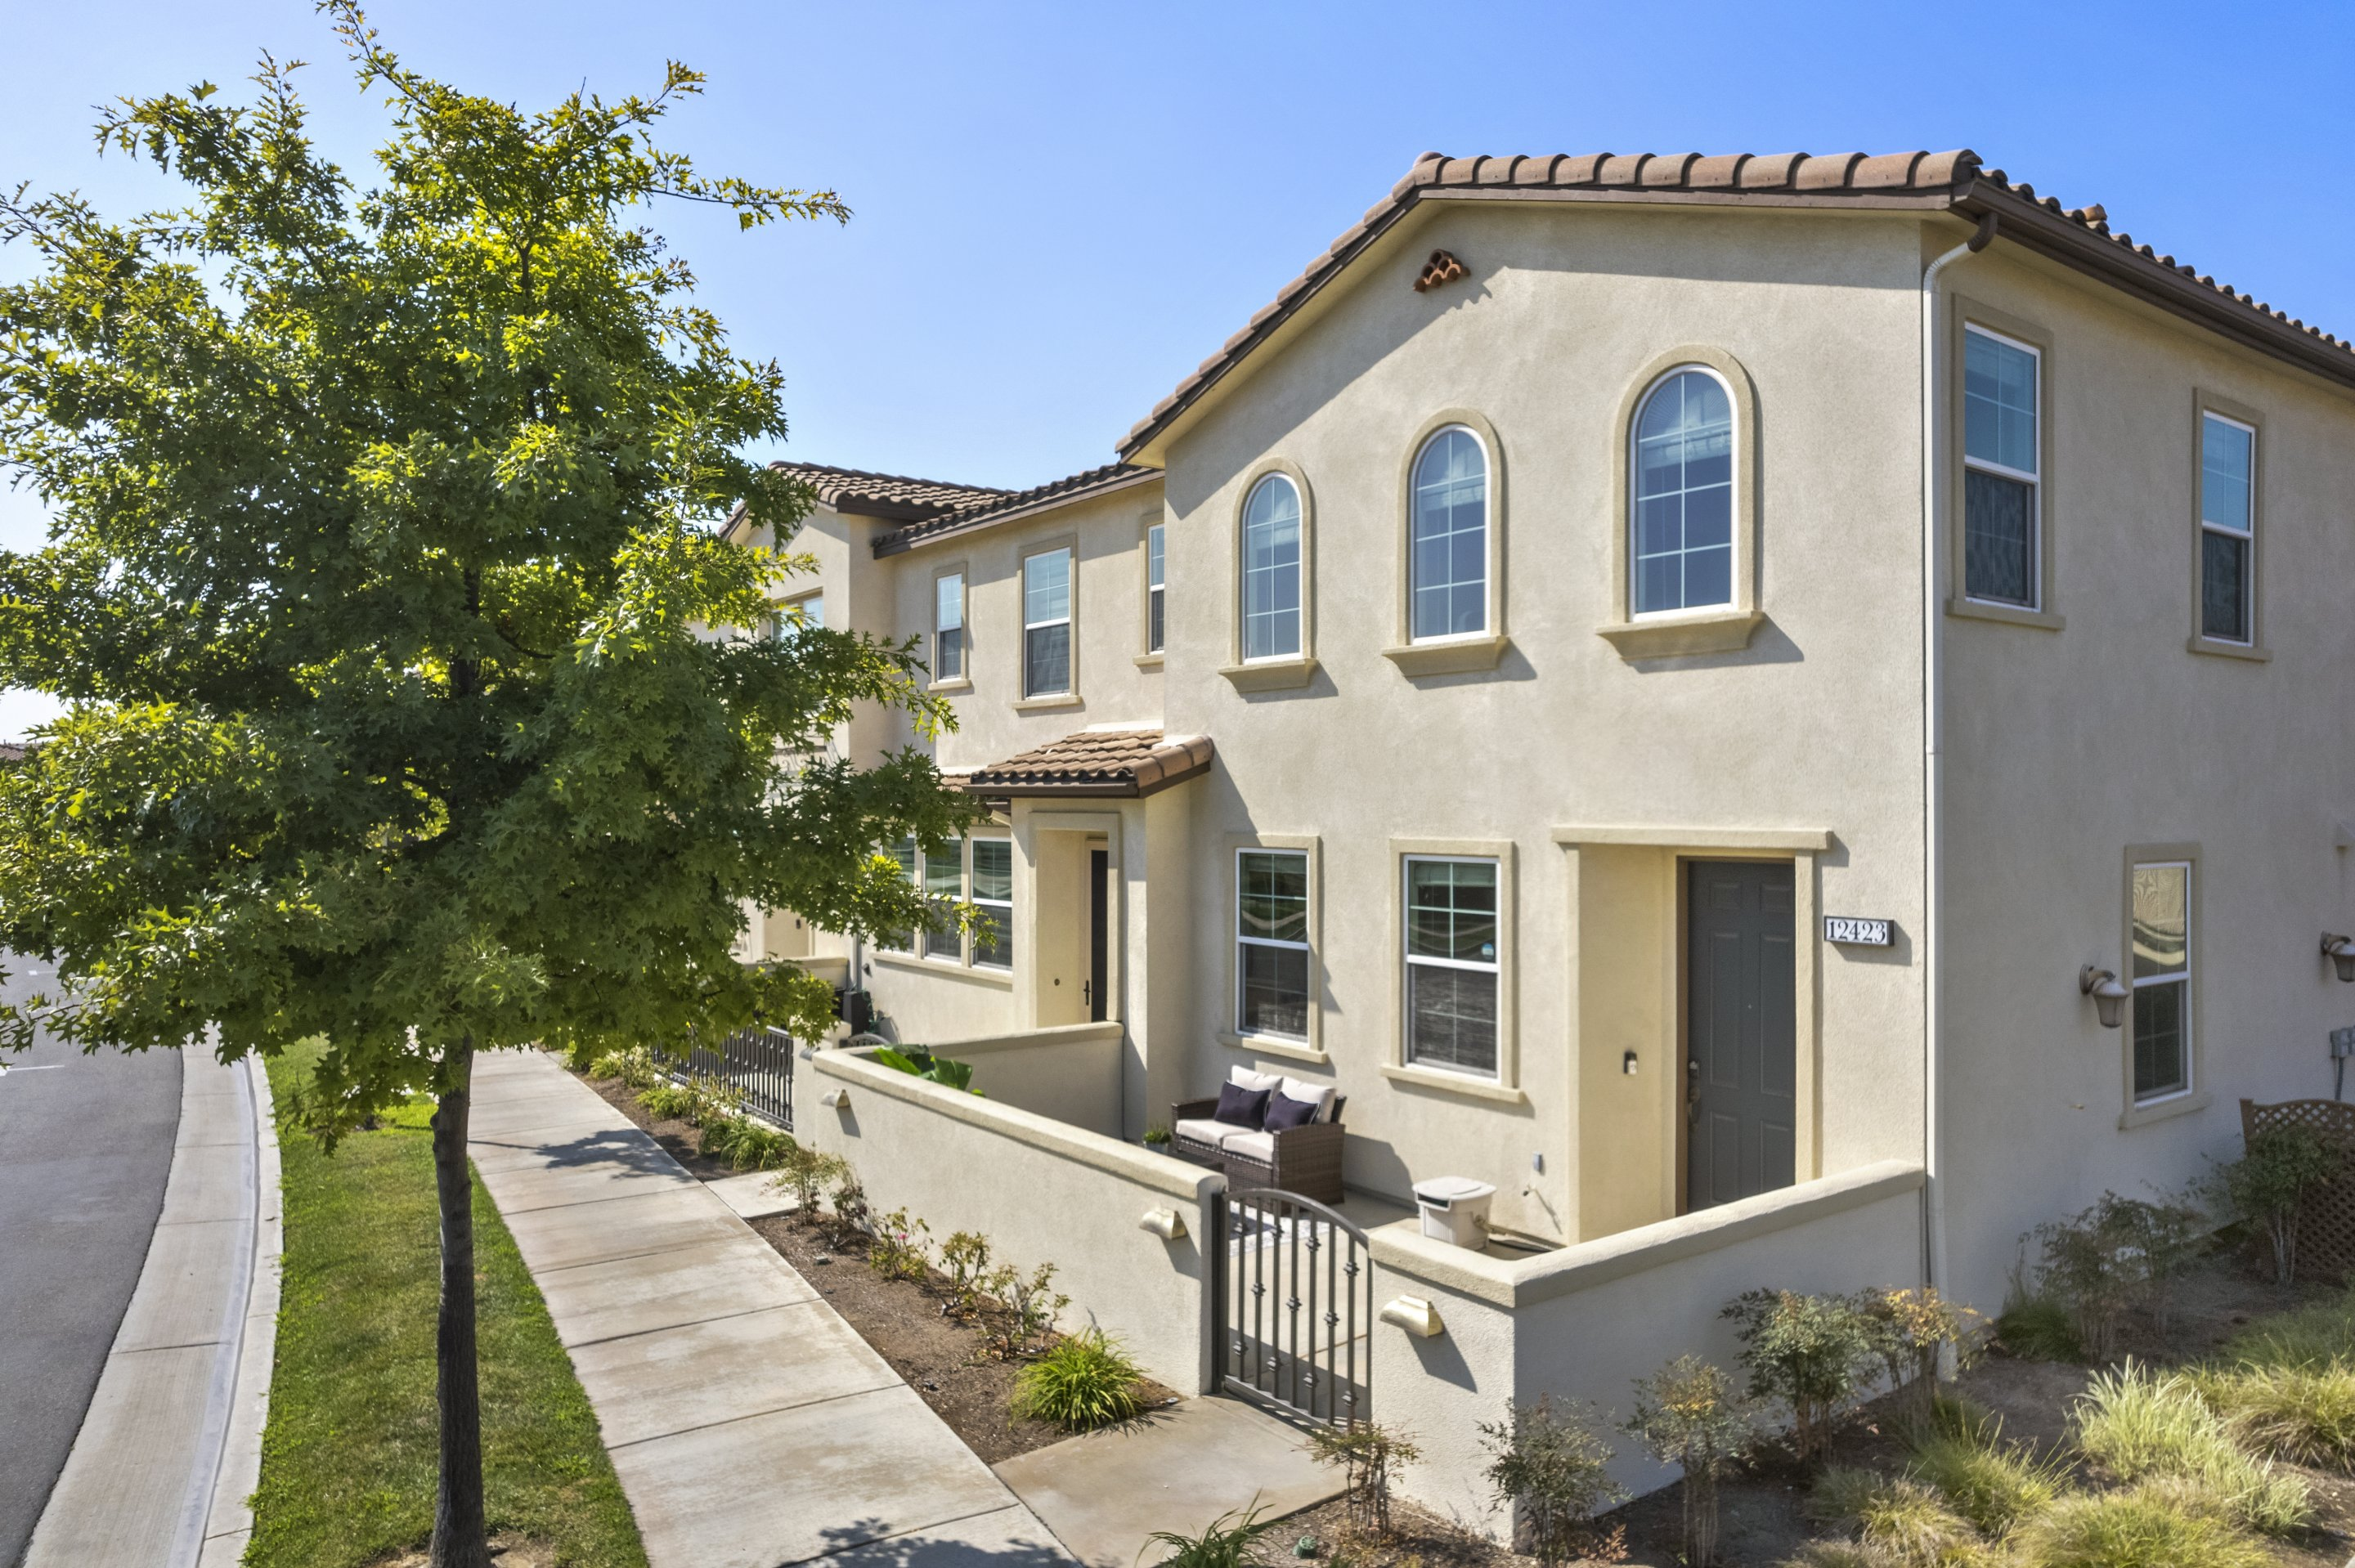 JUST LISTED: 3 Beds + 2.5 Baths + Office Loft Energy-Efficient Living in Santa Fe Springs